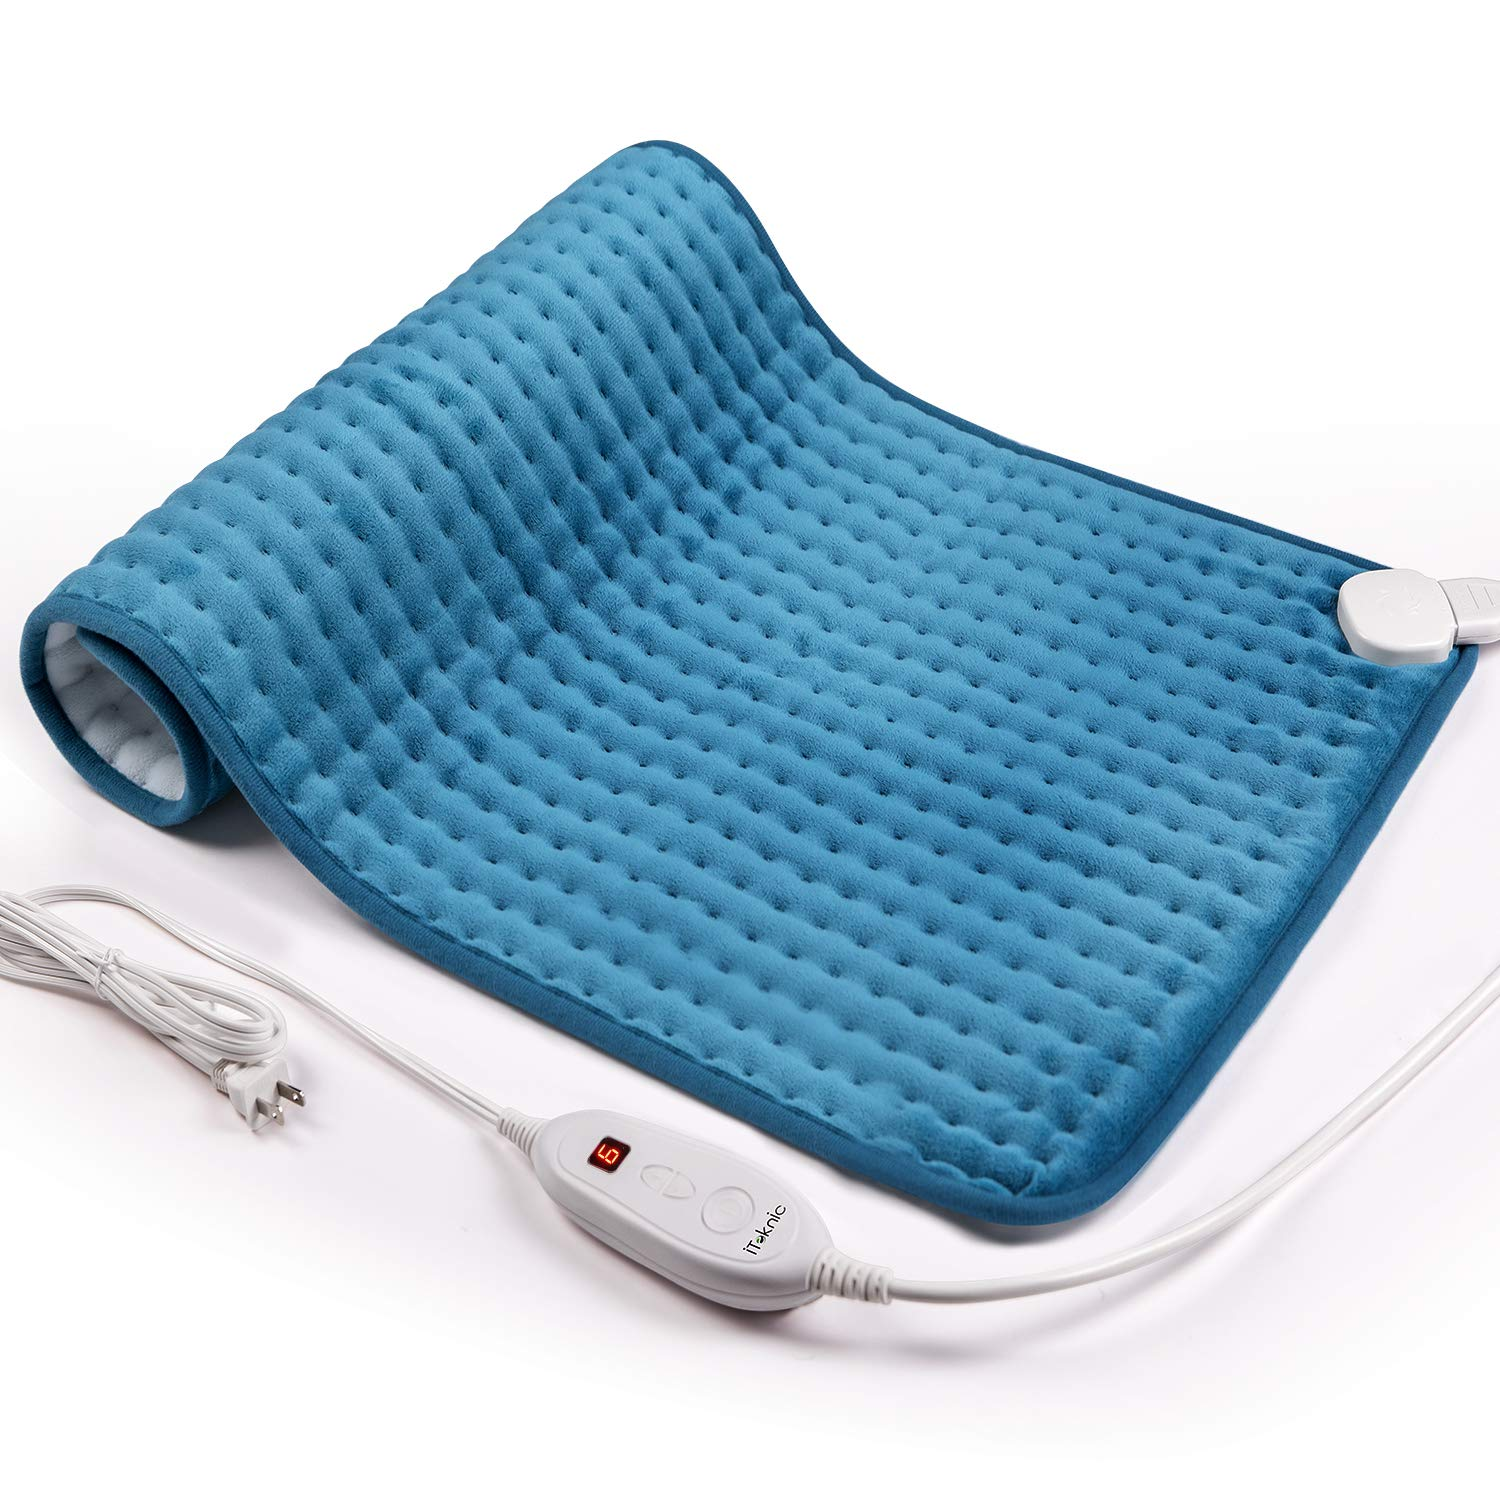 iTeknic Heating Pad for Back Pain and Cramps Relief -Extra Large [17''x33''], Auto Shut Off - Electric Fast Heat Pad with 6 Heat Settings Moist & Dry Heat Therapy Options - Hot Heated Pad by iTeknic